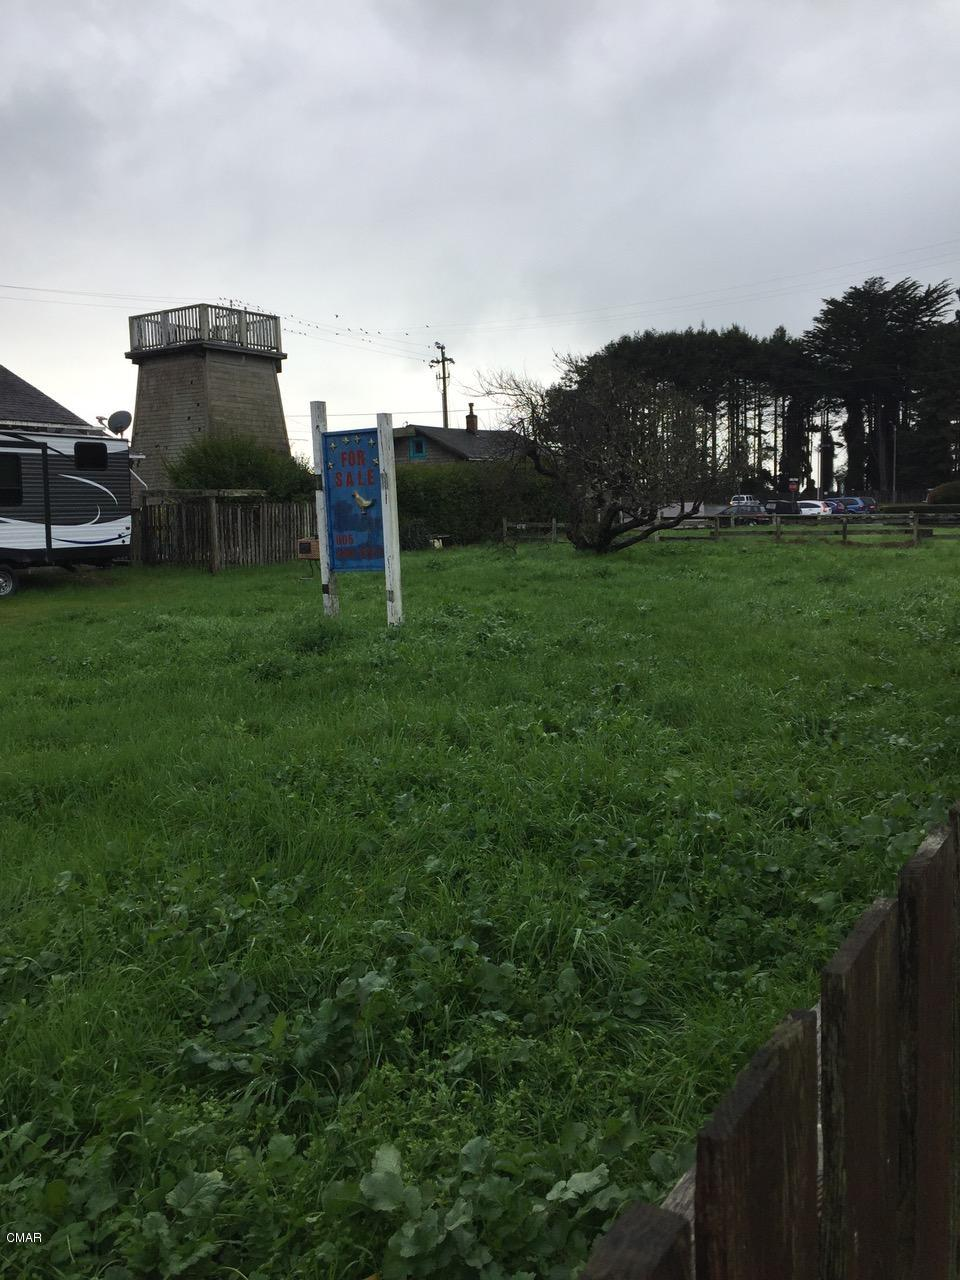 Additional photo for property listing at 585 S Franklin Street Fort Bragg, California 95437 United States